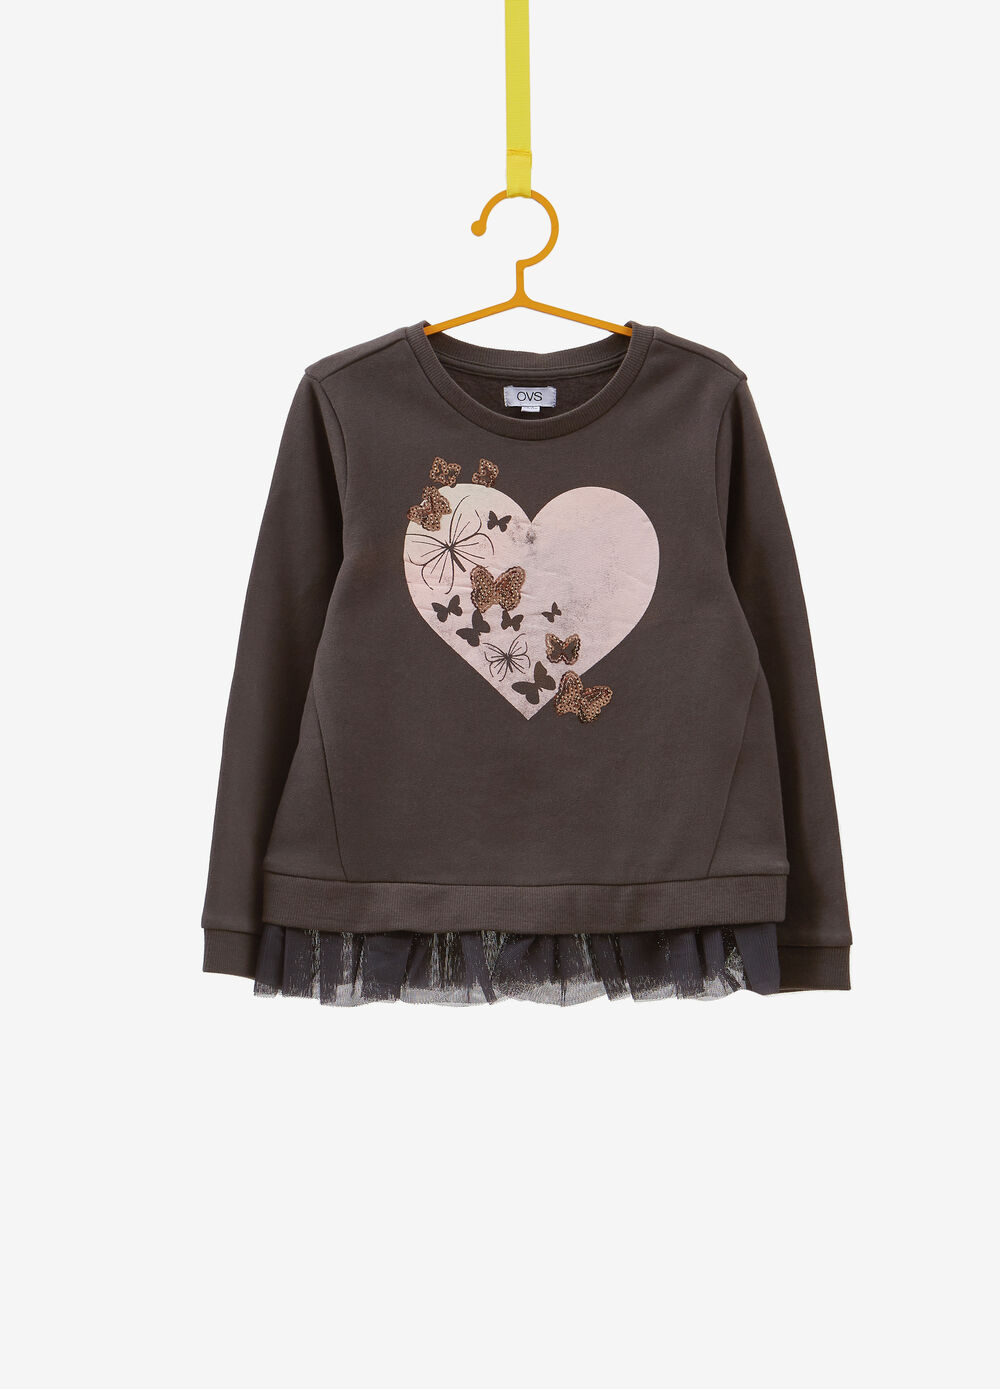 100% cotton sweatshirt with sequins and print